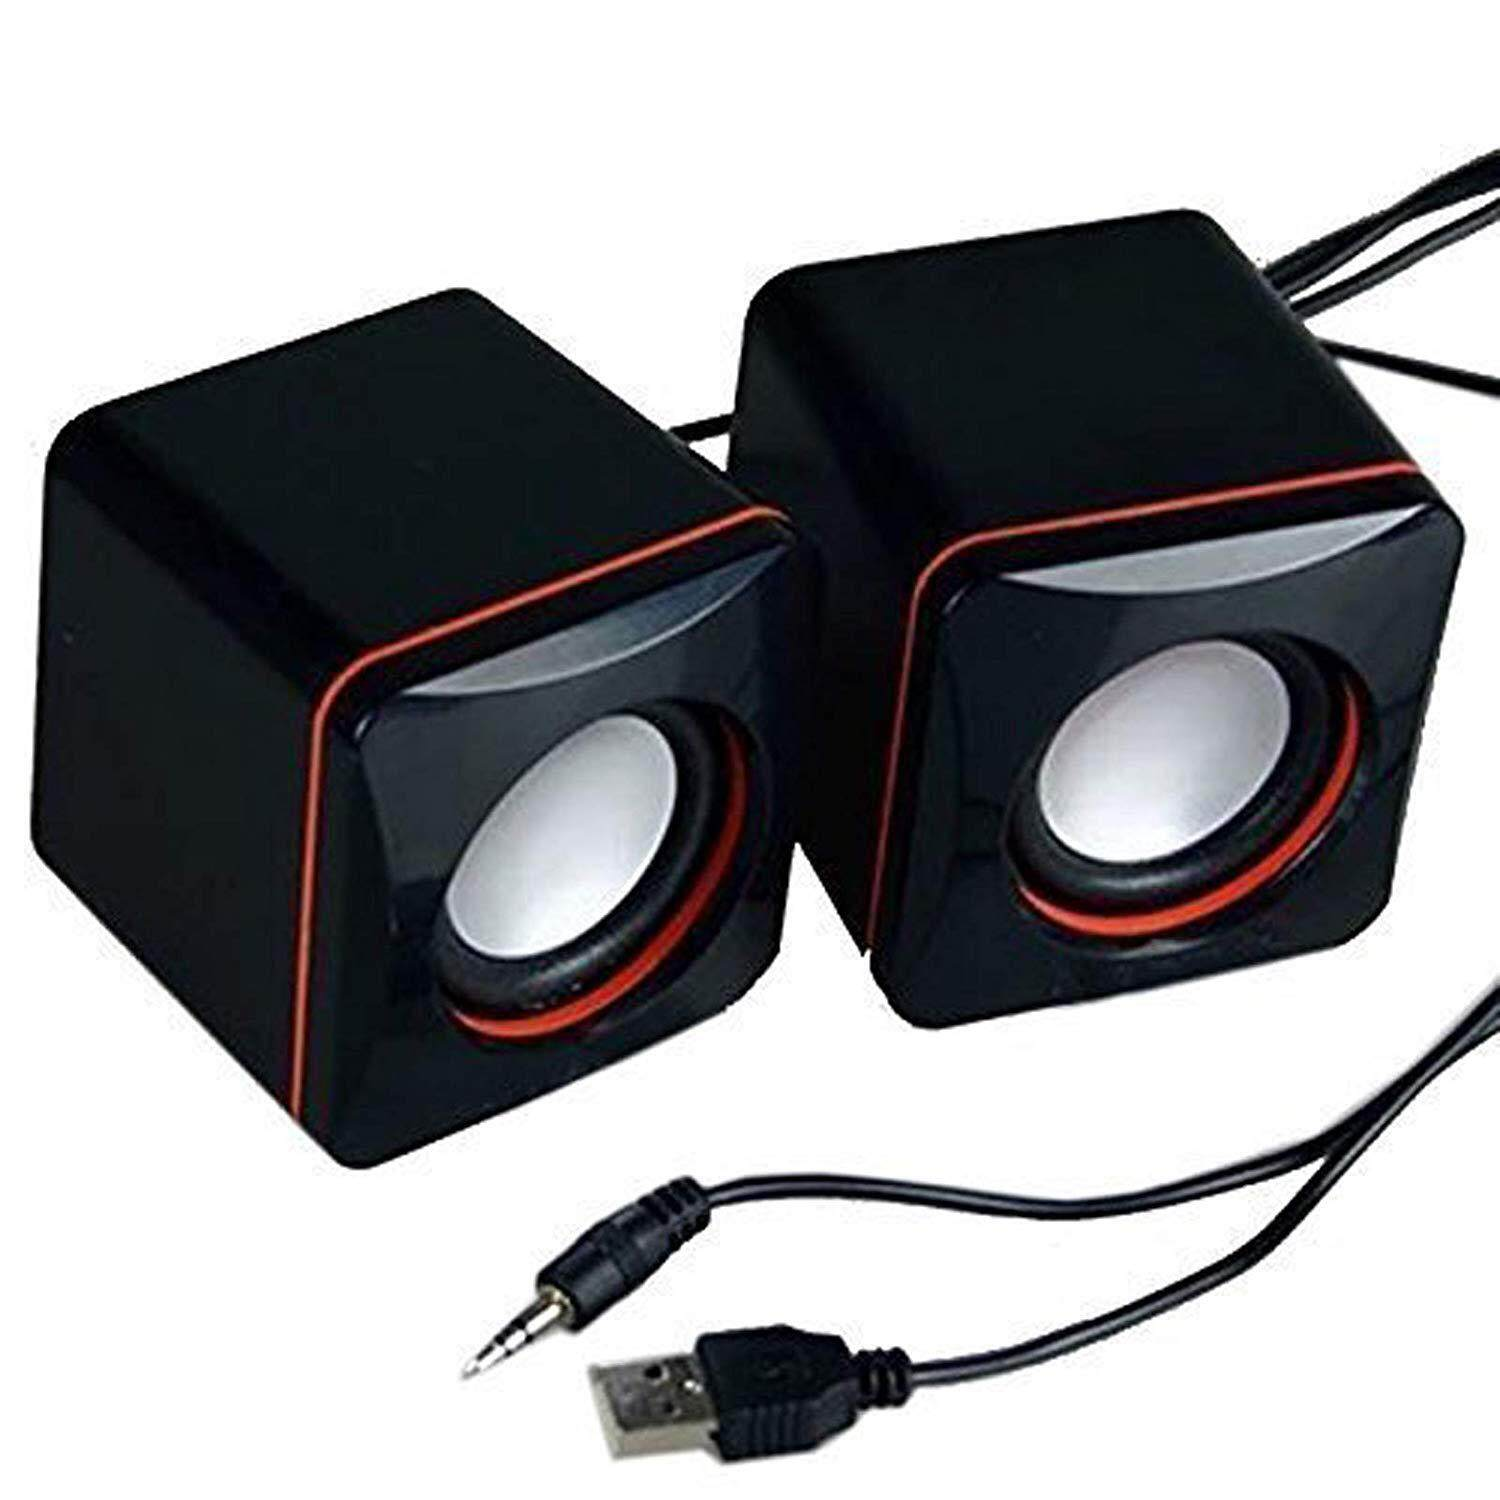 Portable Computer Speakers USB Powered Desktop Mini Speaker Bass Sound Music Player System Wired Small Speaker Malaysia